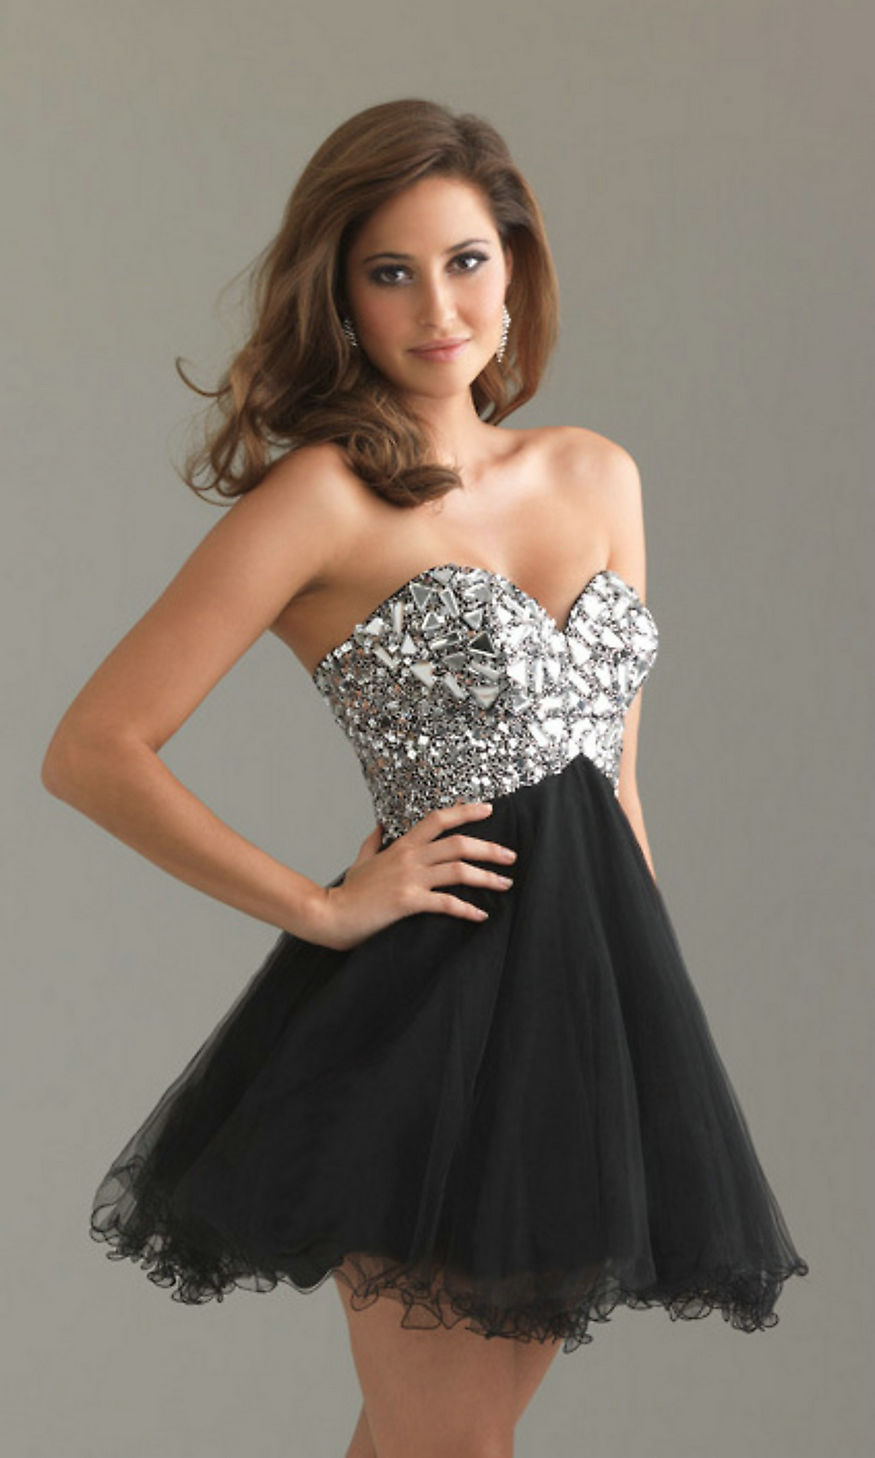 Fashion week Strapless Short formal dresses for lady